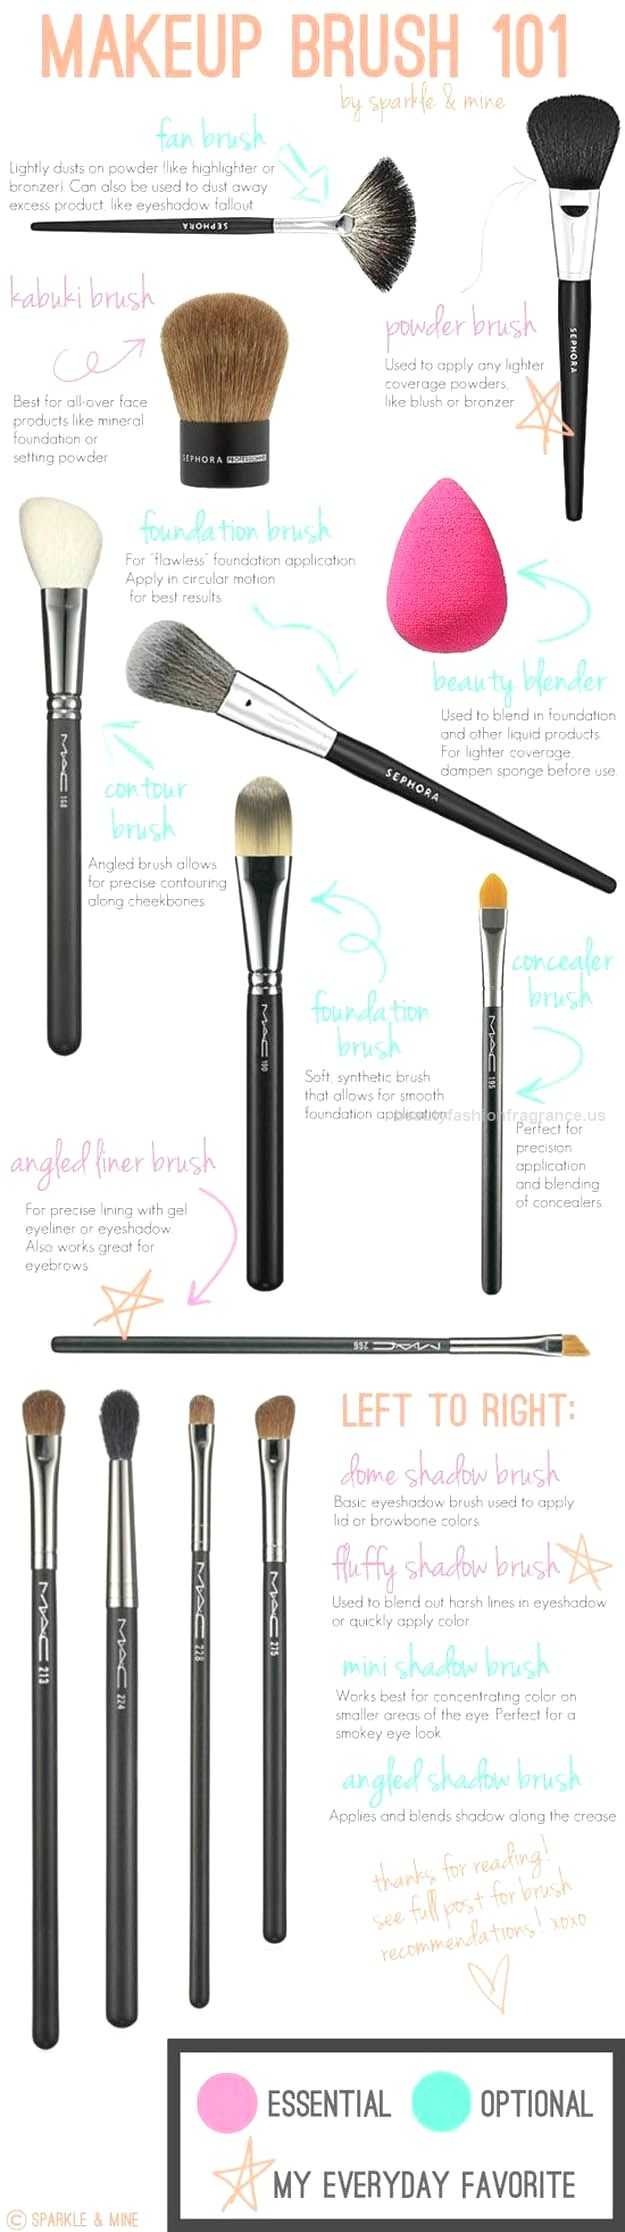 Best Makeup Tutorials from Around the Web – Makeup Tutorials  Makeup Brushes 101 | Best Makeup Brush Sets by Makeup Tutorials at makeuptutorials.c…  http://www.beautyfashionfragrance.us/2017/05/31/best-makeup-tutorials-from-around-the-web-makeup-tutorials-2/